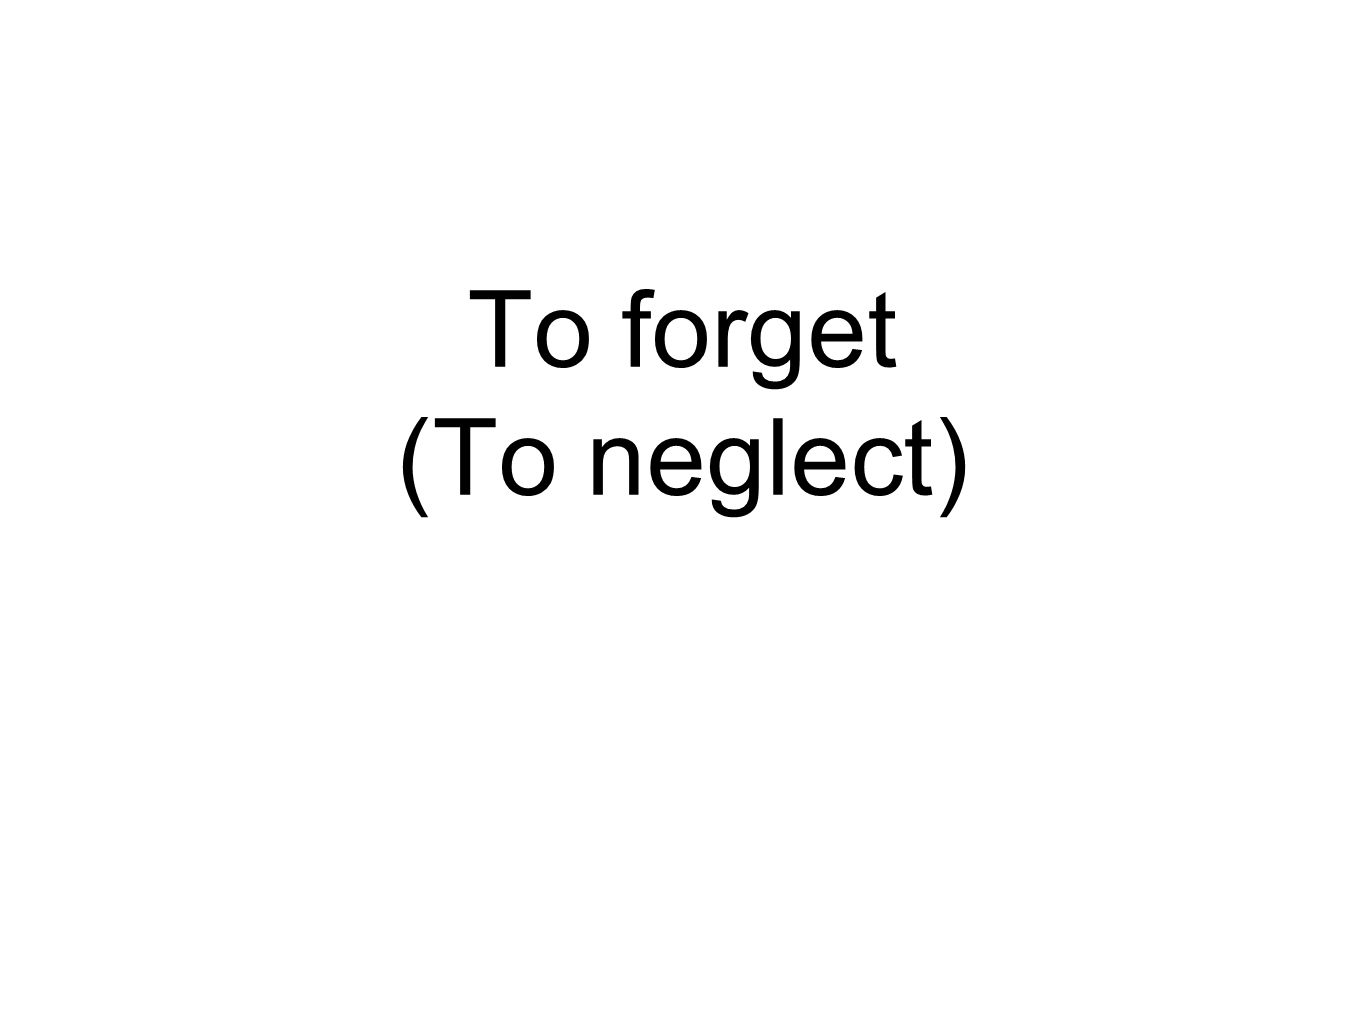 To forget (To neglect)